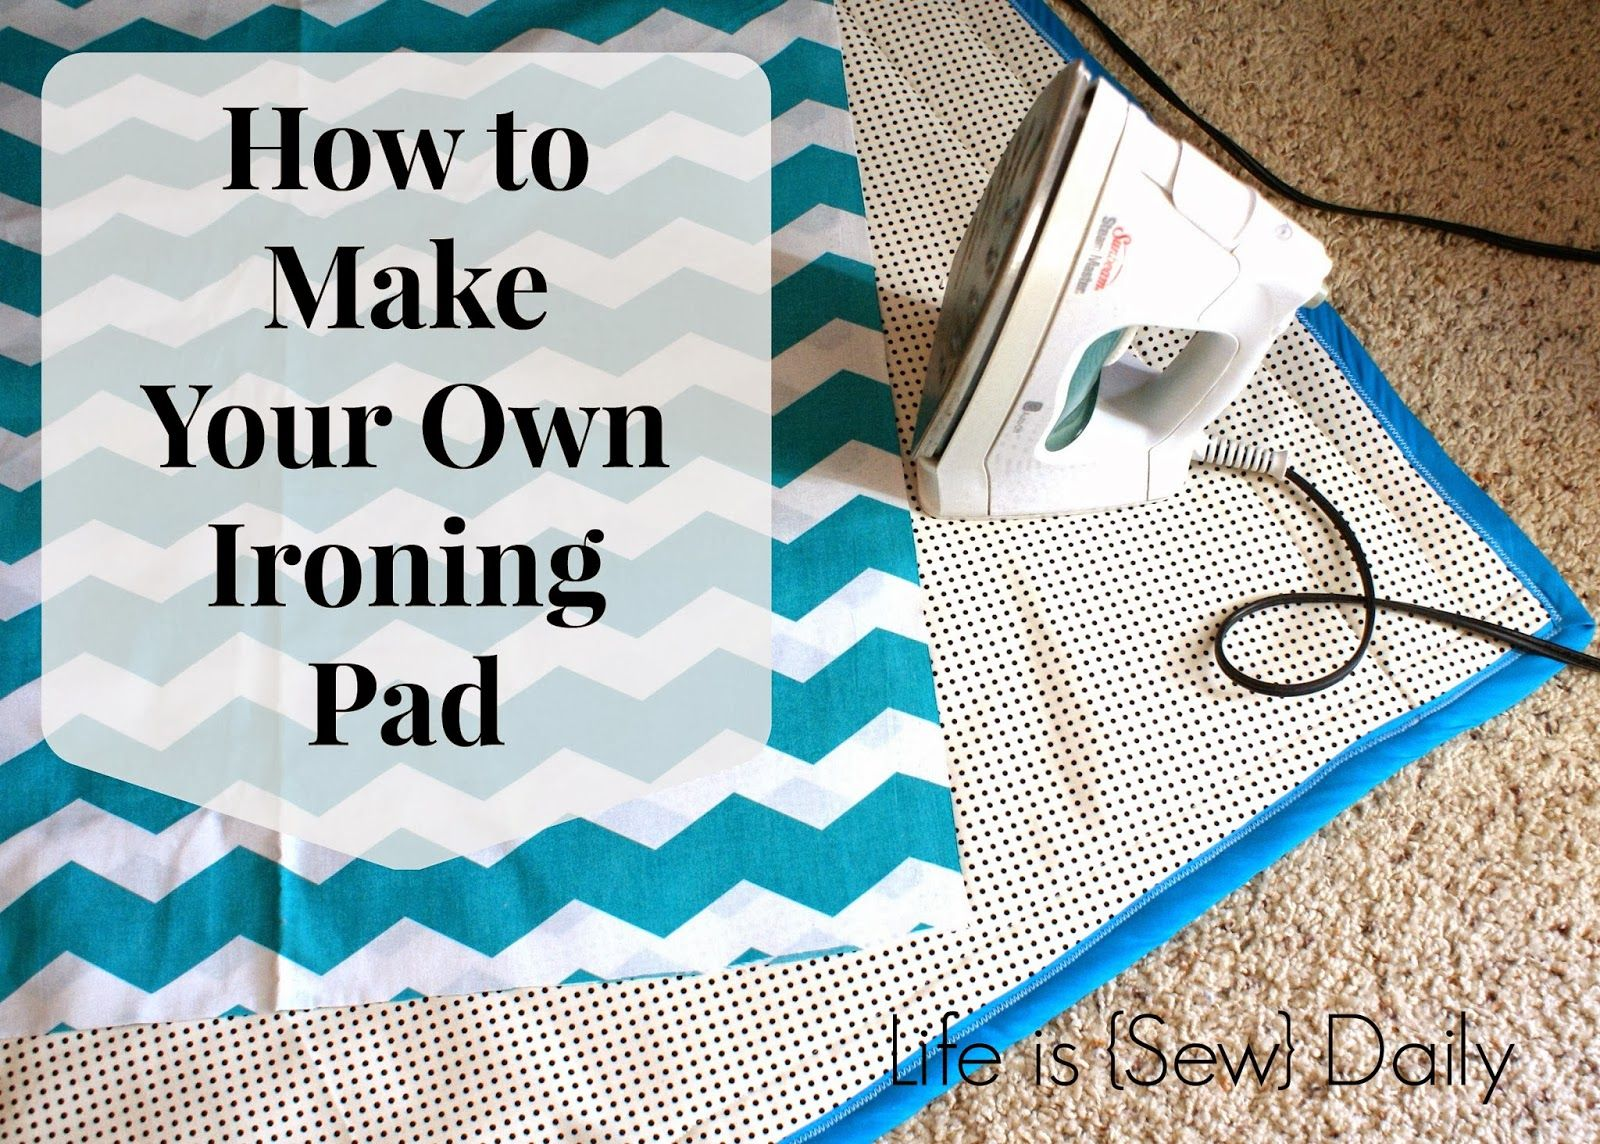 How To Make An Ironing Pad Life Is Sew Daily Ironing Pad